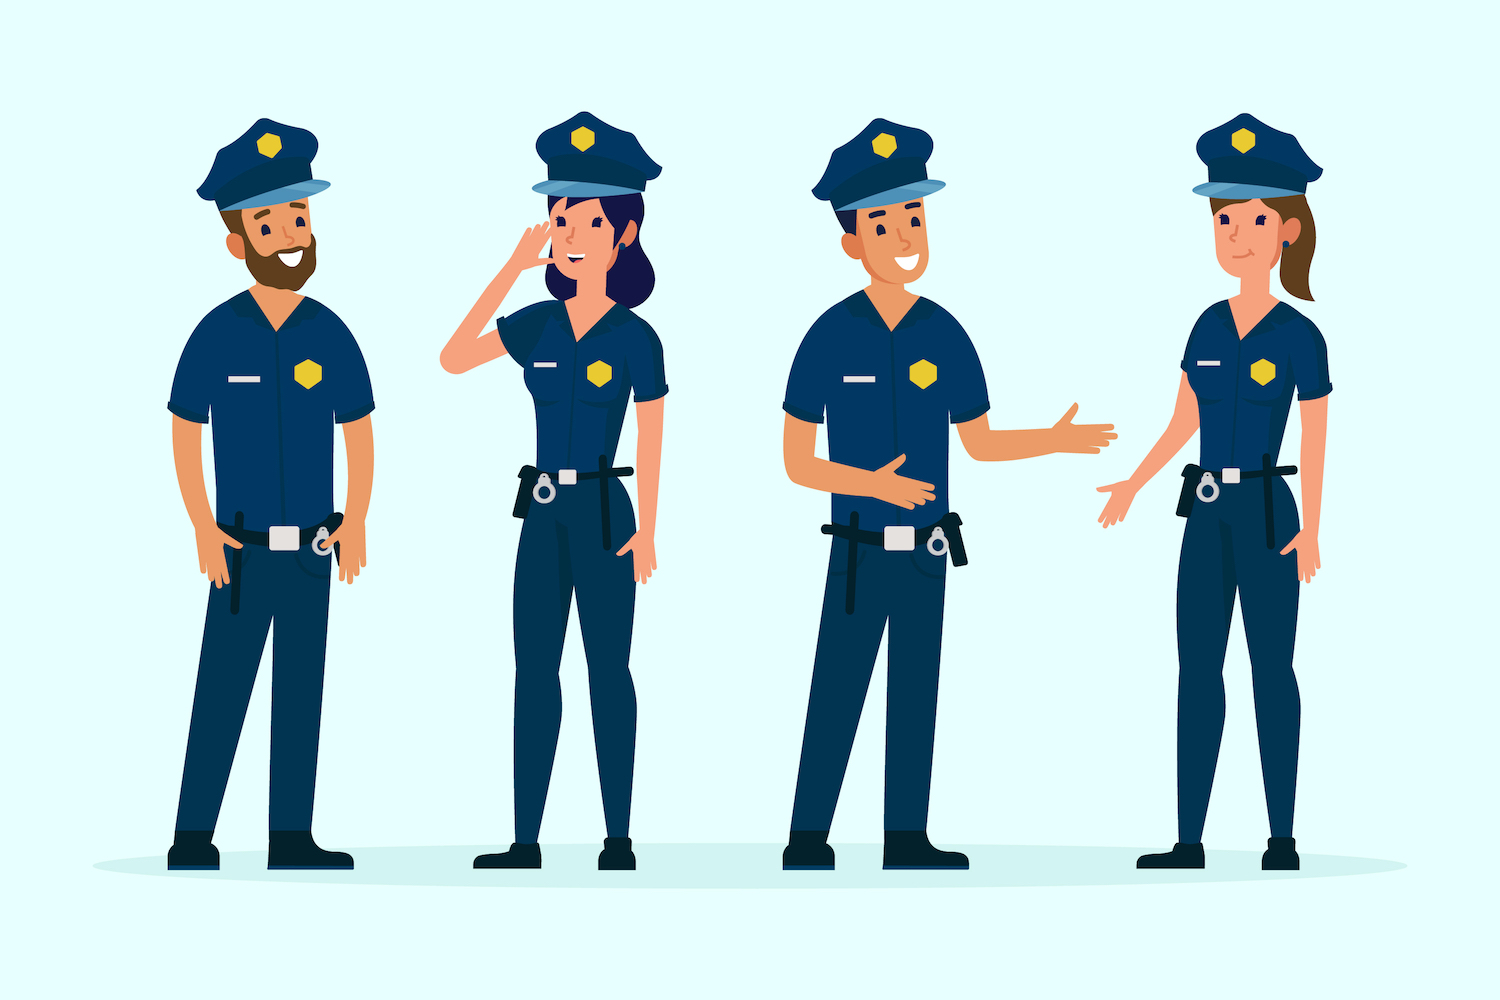 Animation of police officers.